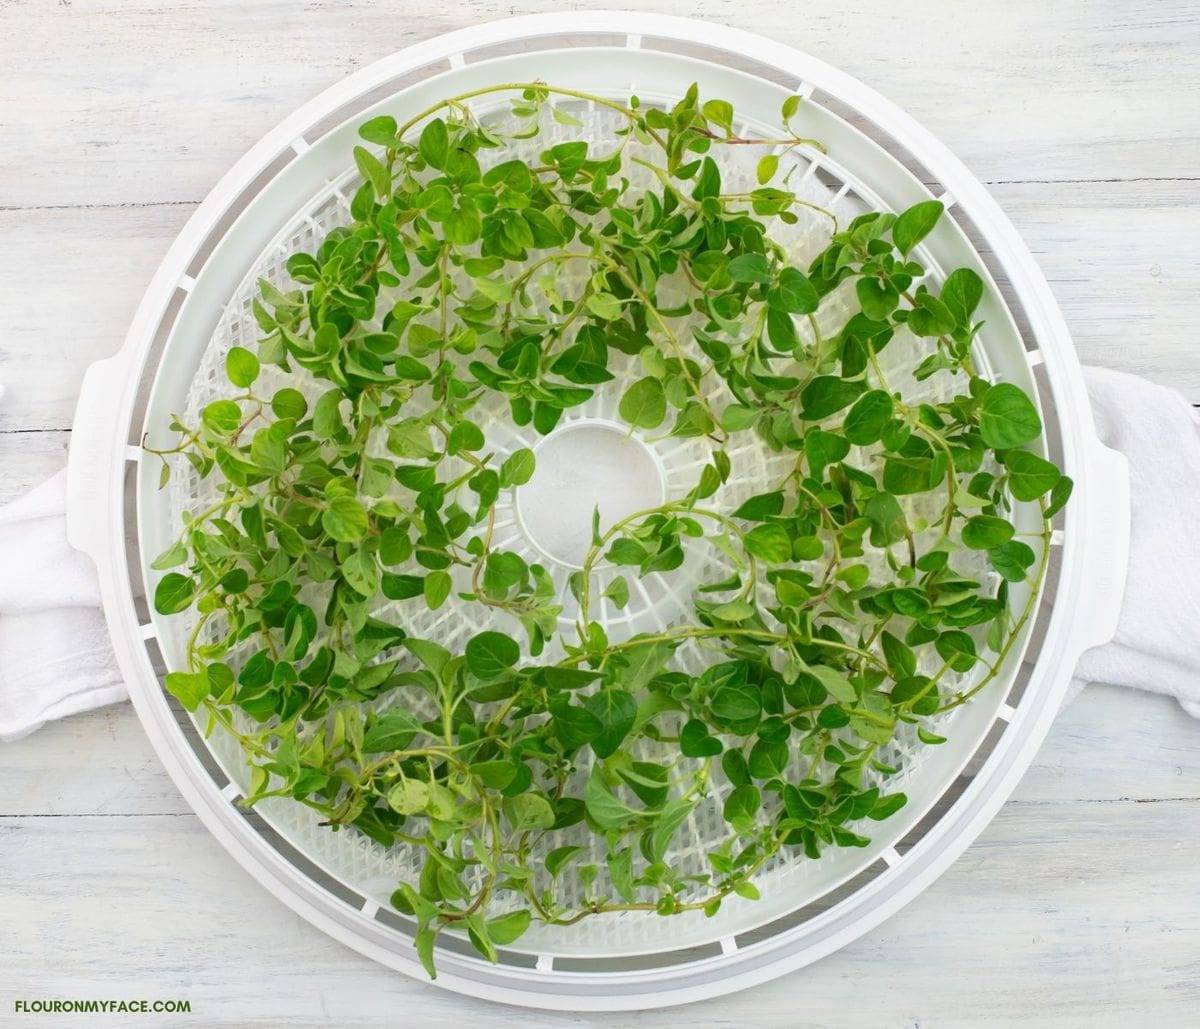 A round dehydrator tray filled with oregano.